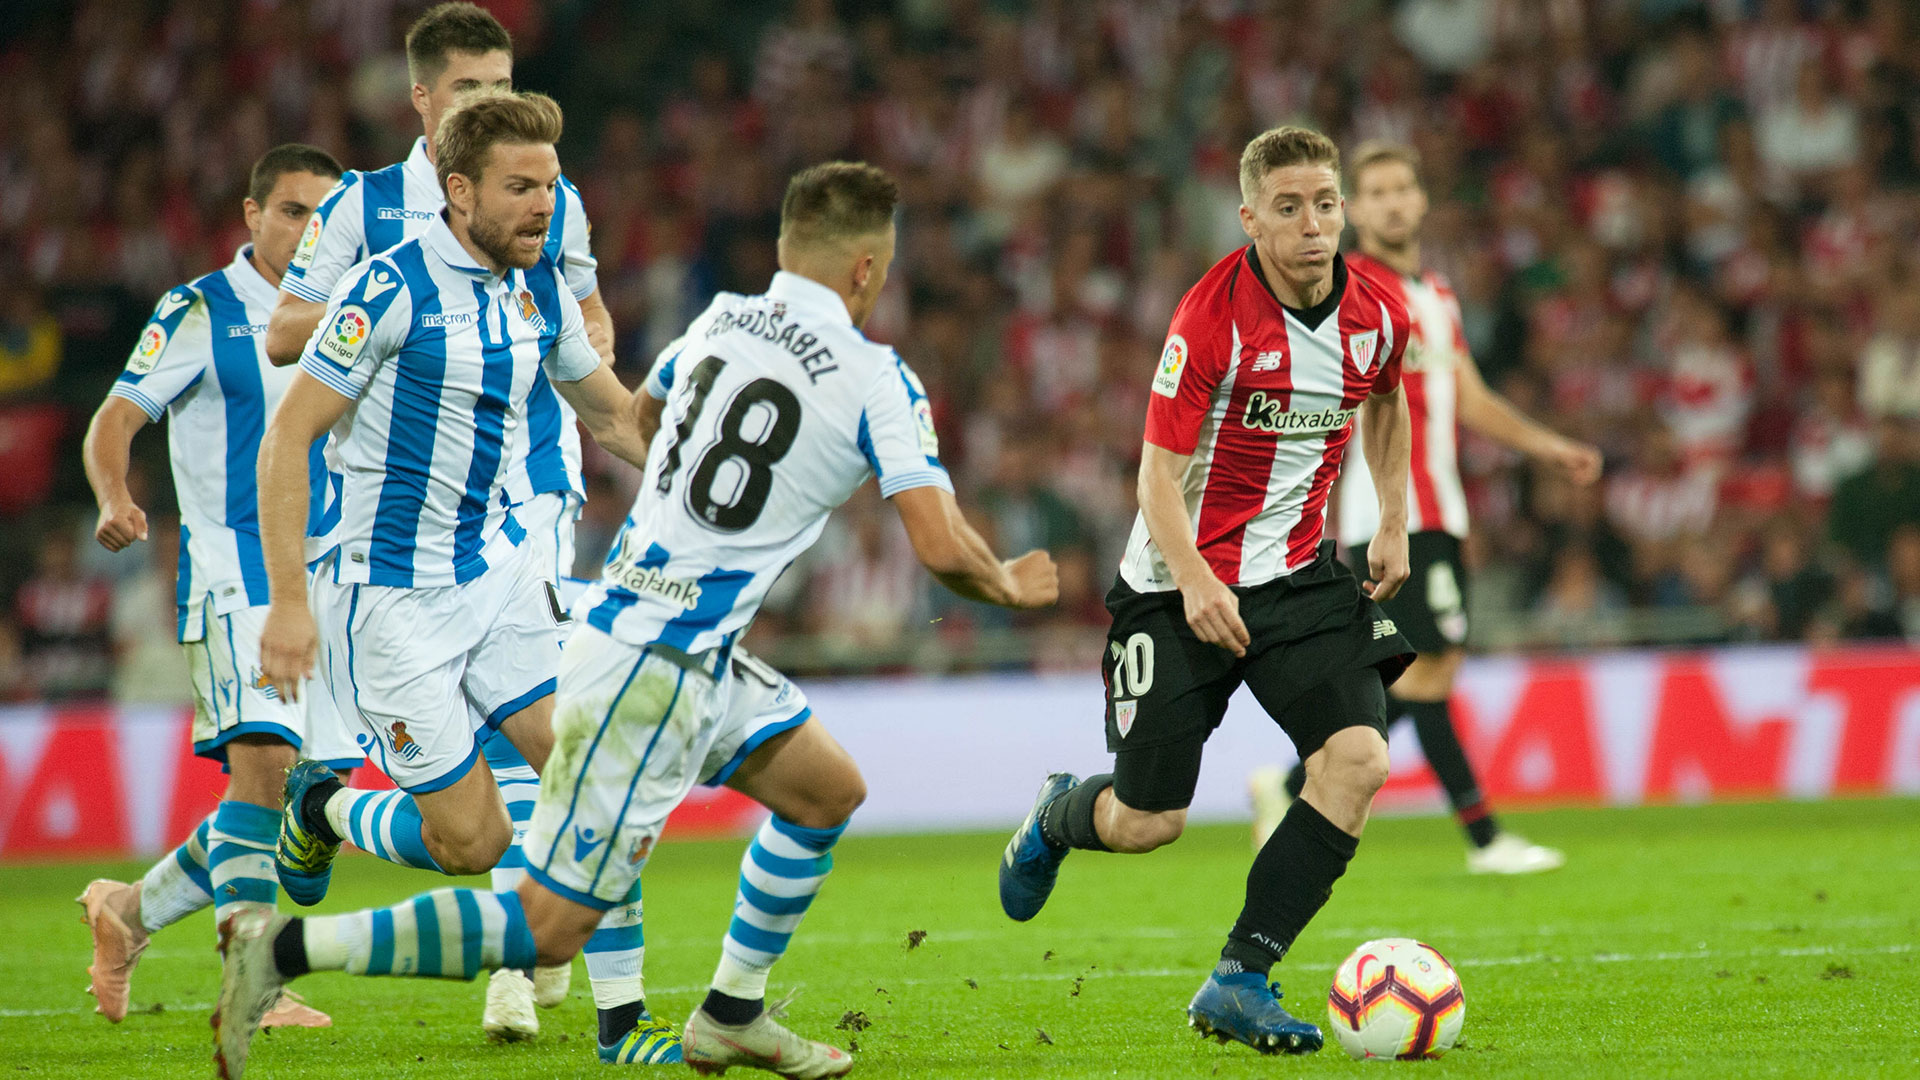 Real Sociedad-Athletic Club, fecha y hora